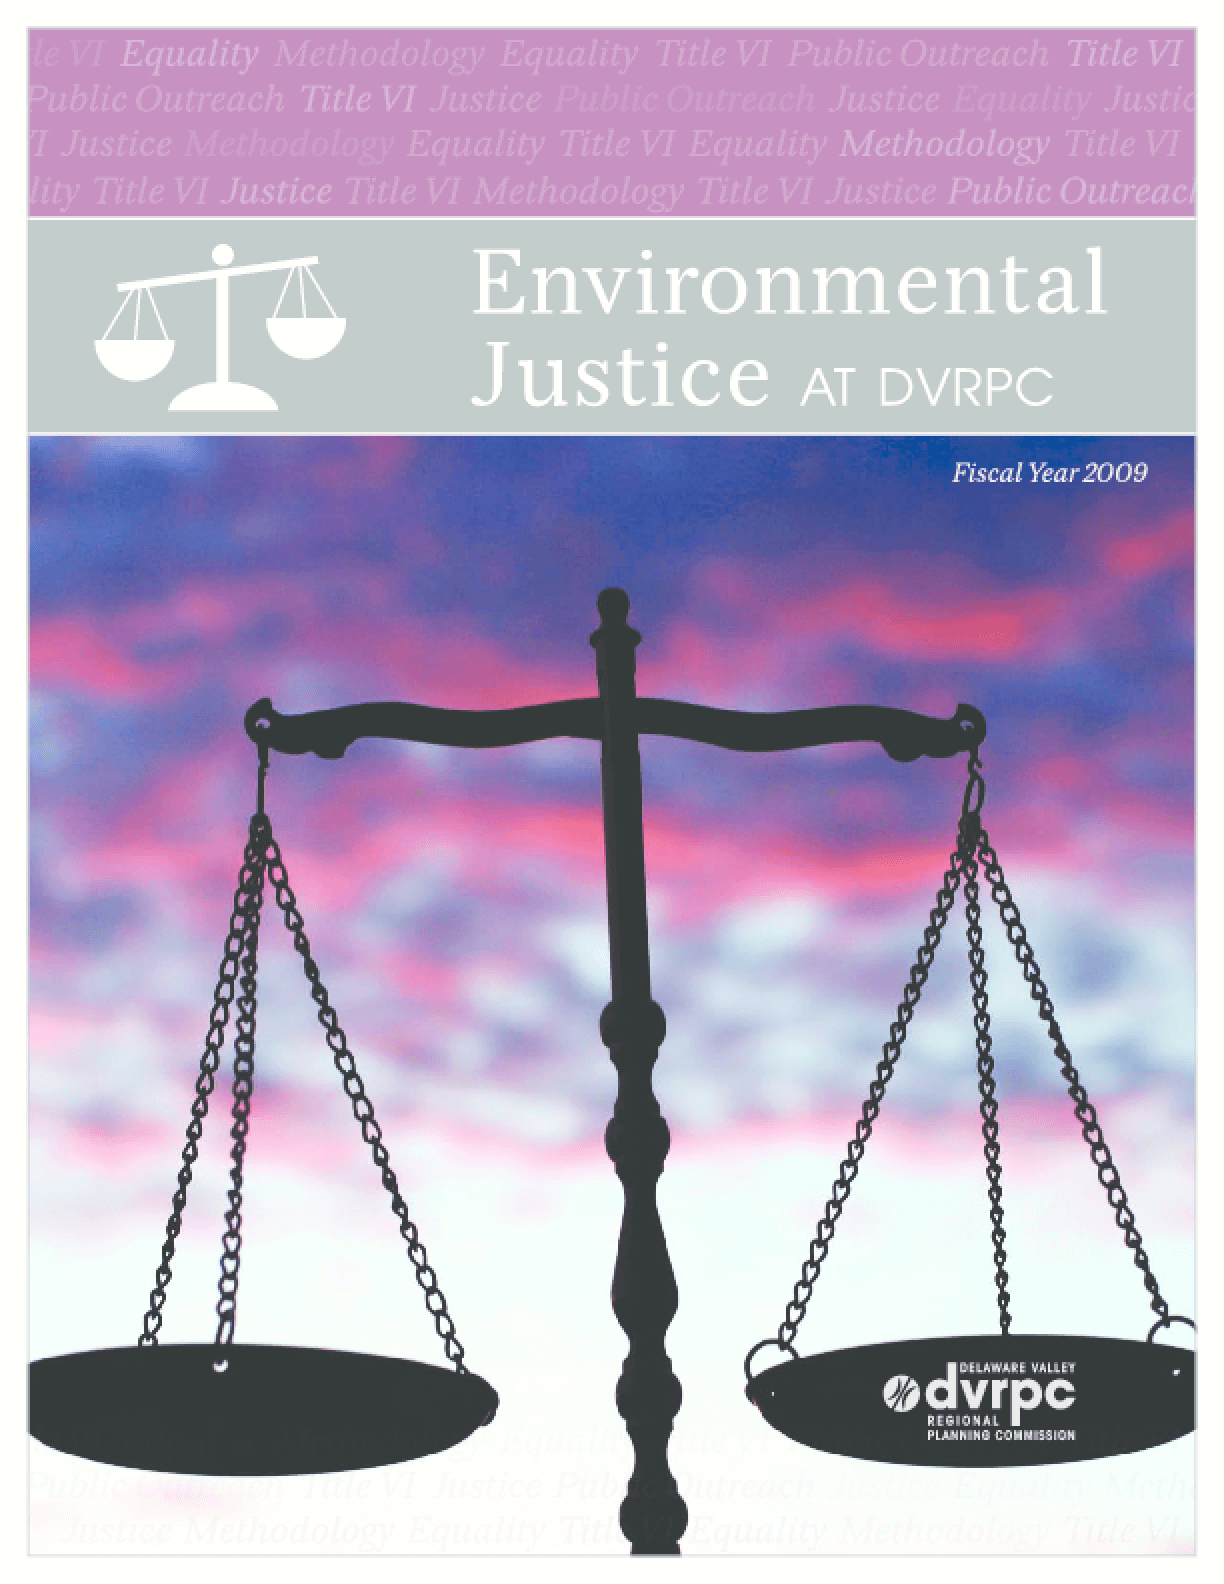 Environmental Justice at DVRPC: Fiscal Year 2009